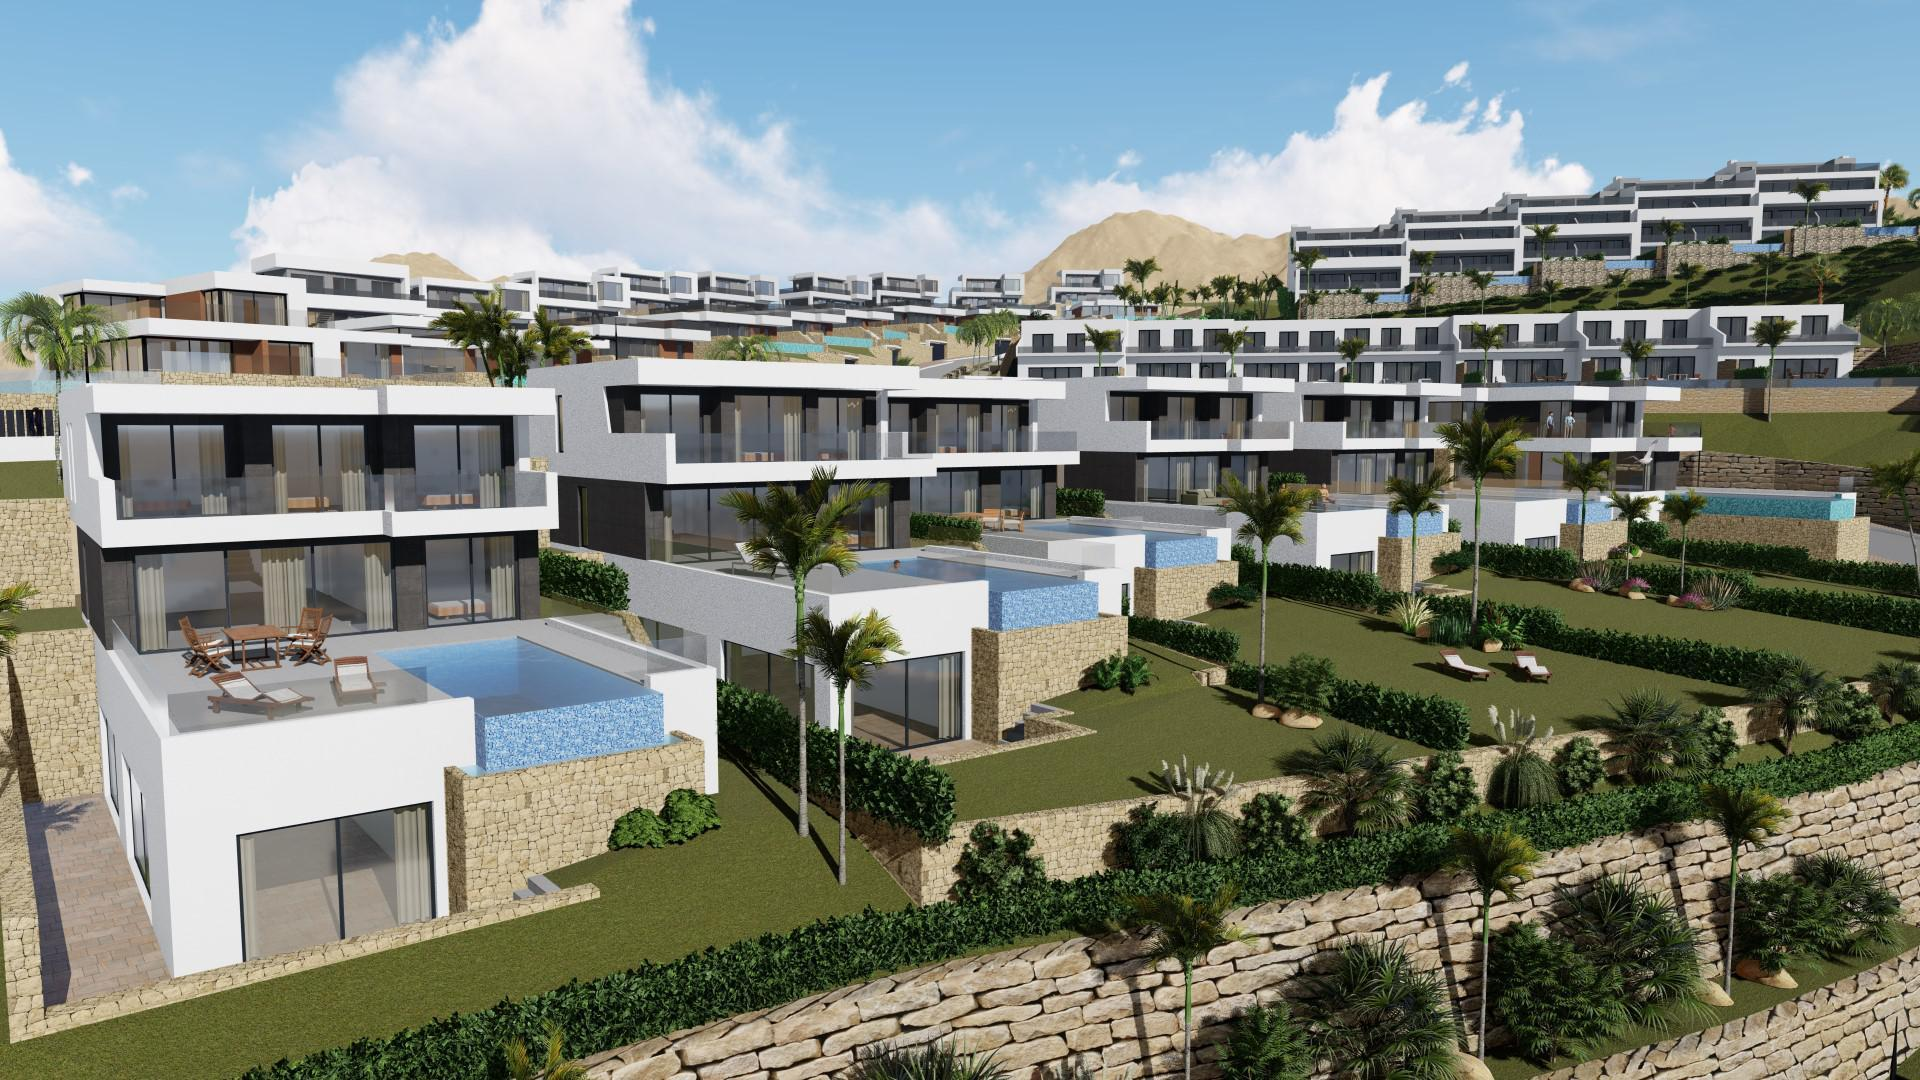 Photogallery - 3 - Exceptional homes in the Costa Blanca. Unparalleled Service. Exceptional properties in the Costa Blanca